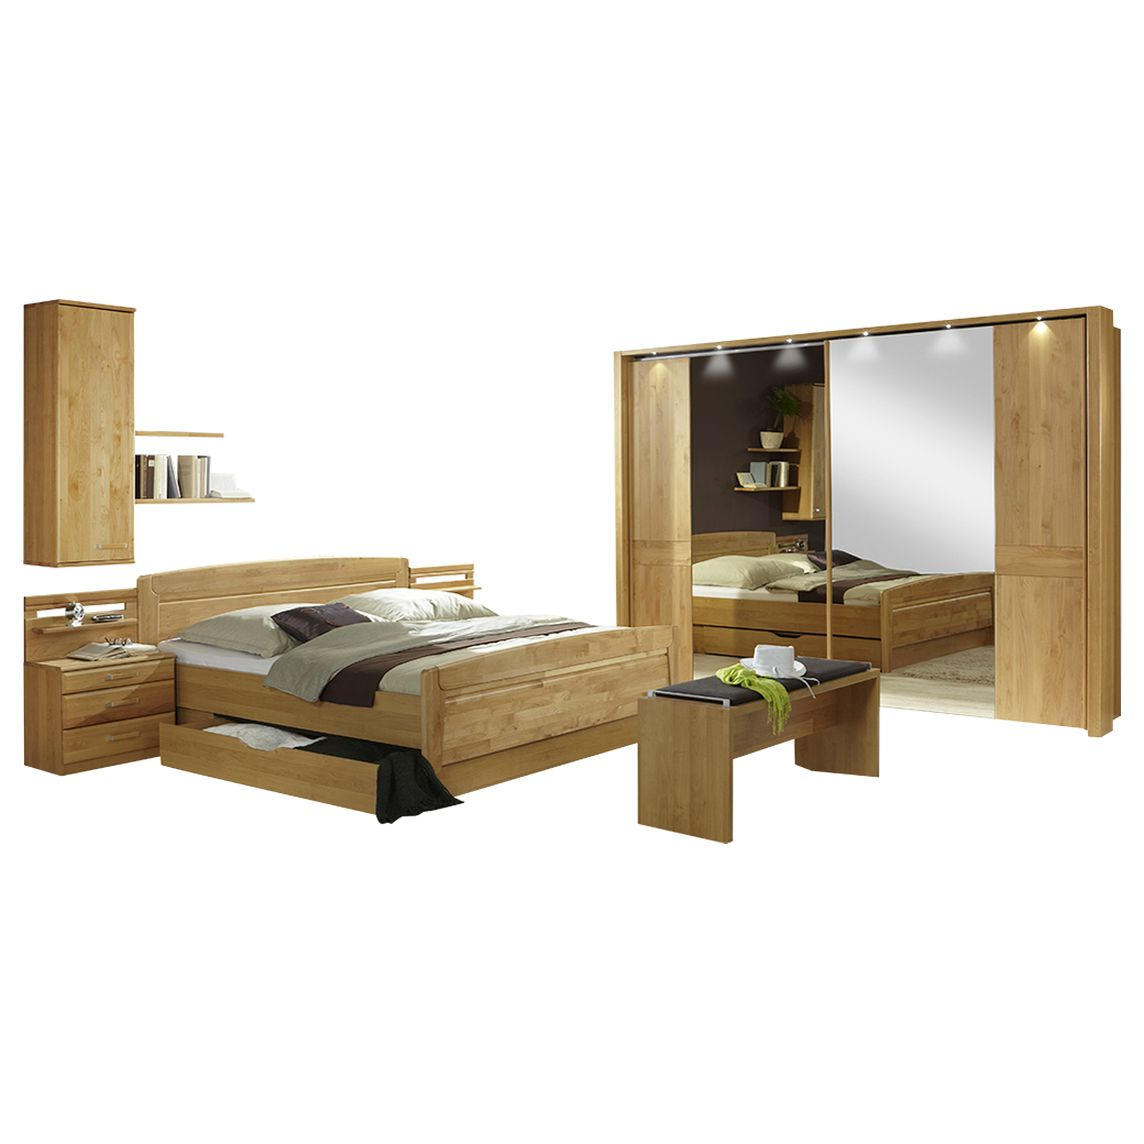 schlafzimmer komplett lausanne ii erle dekor erle massiv althoff online kaufen. Black Bedroom Furniture Sets. Home Design Ideas